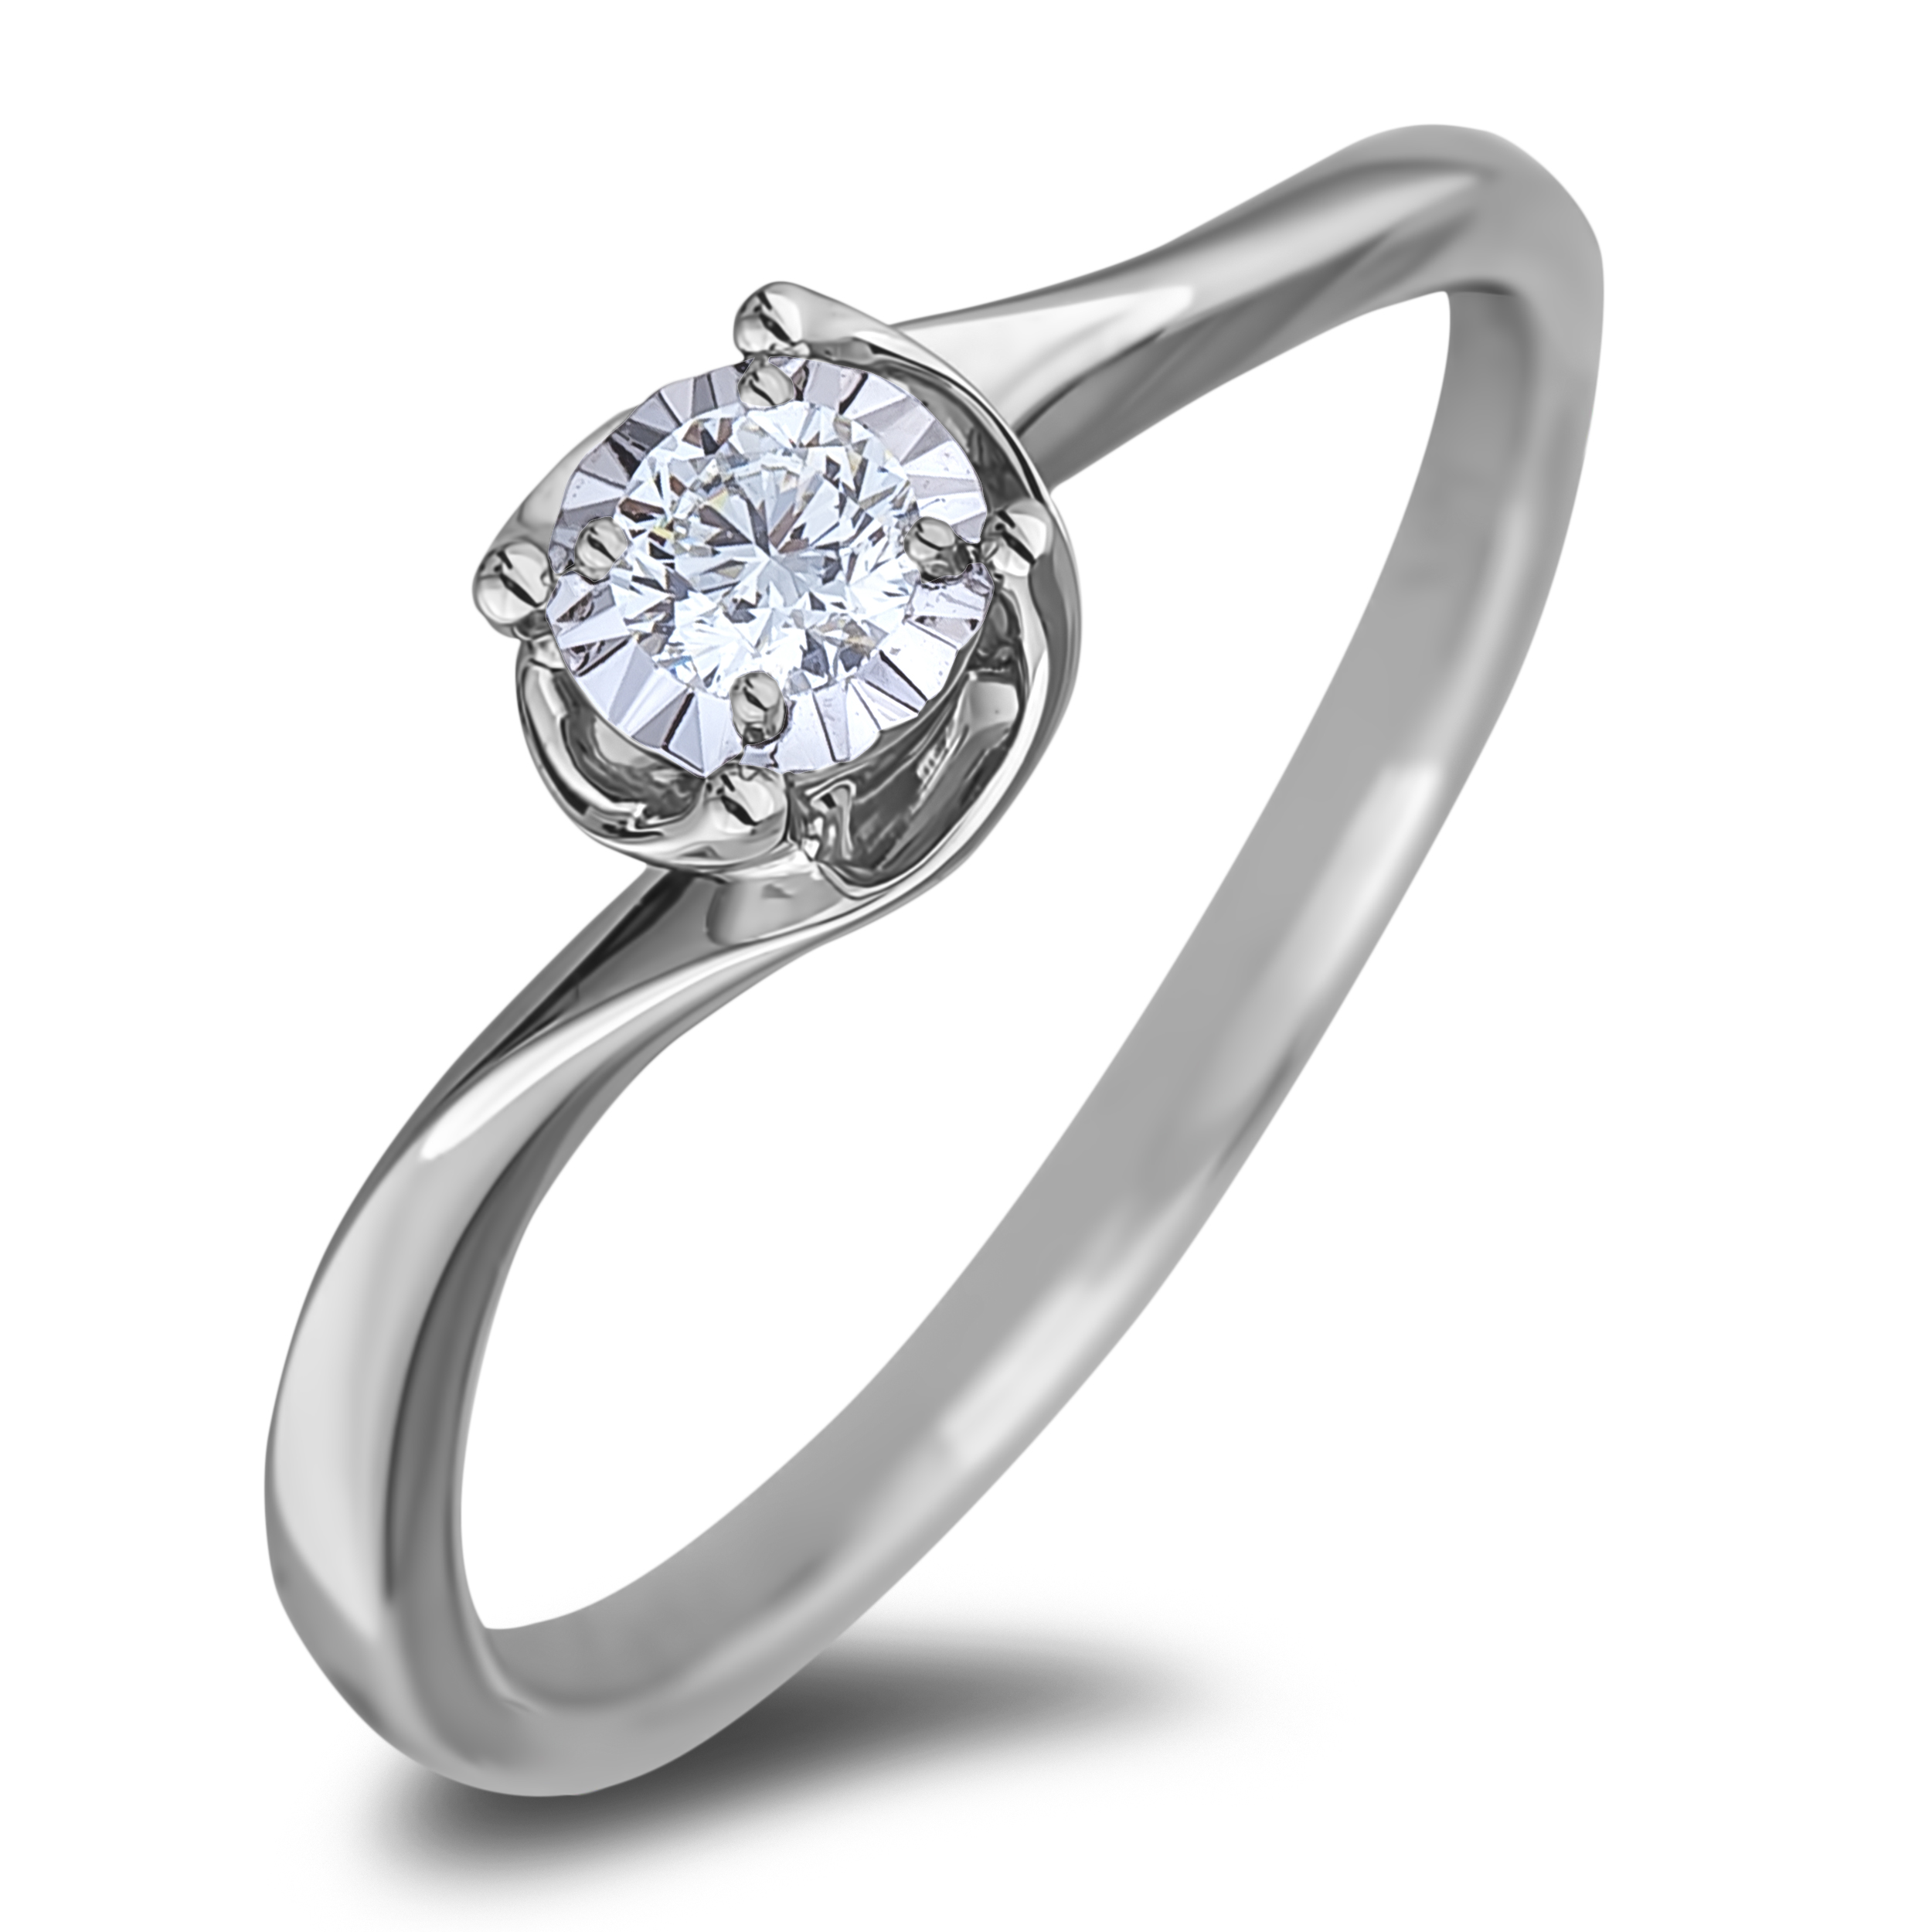 Diamond Solitaire Rings AFCR1022010 (Rings)